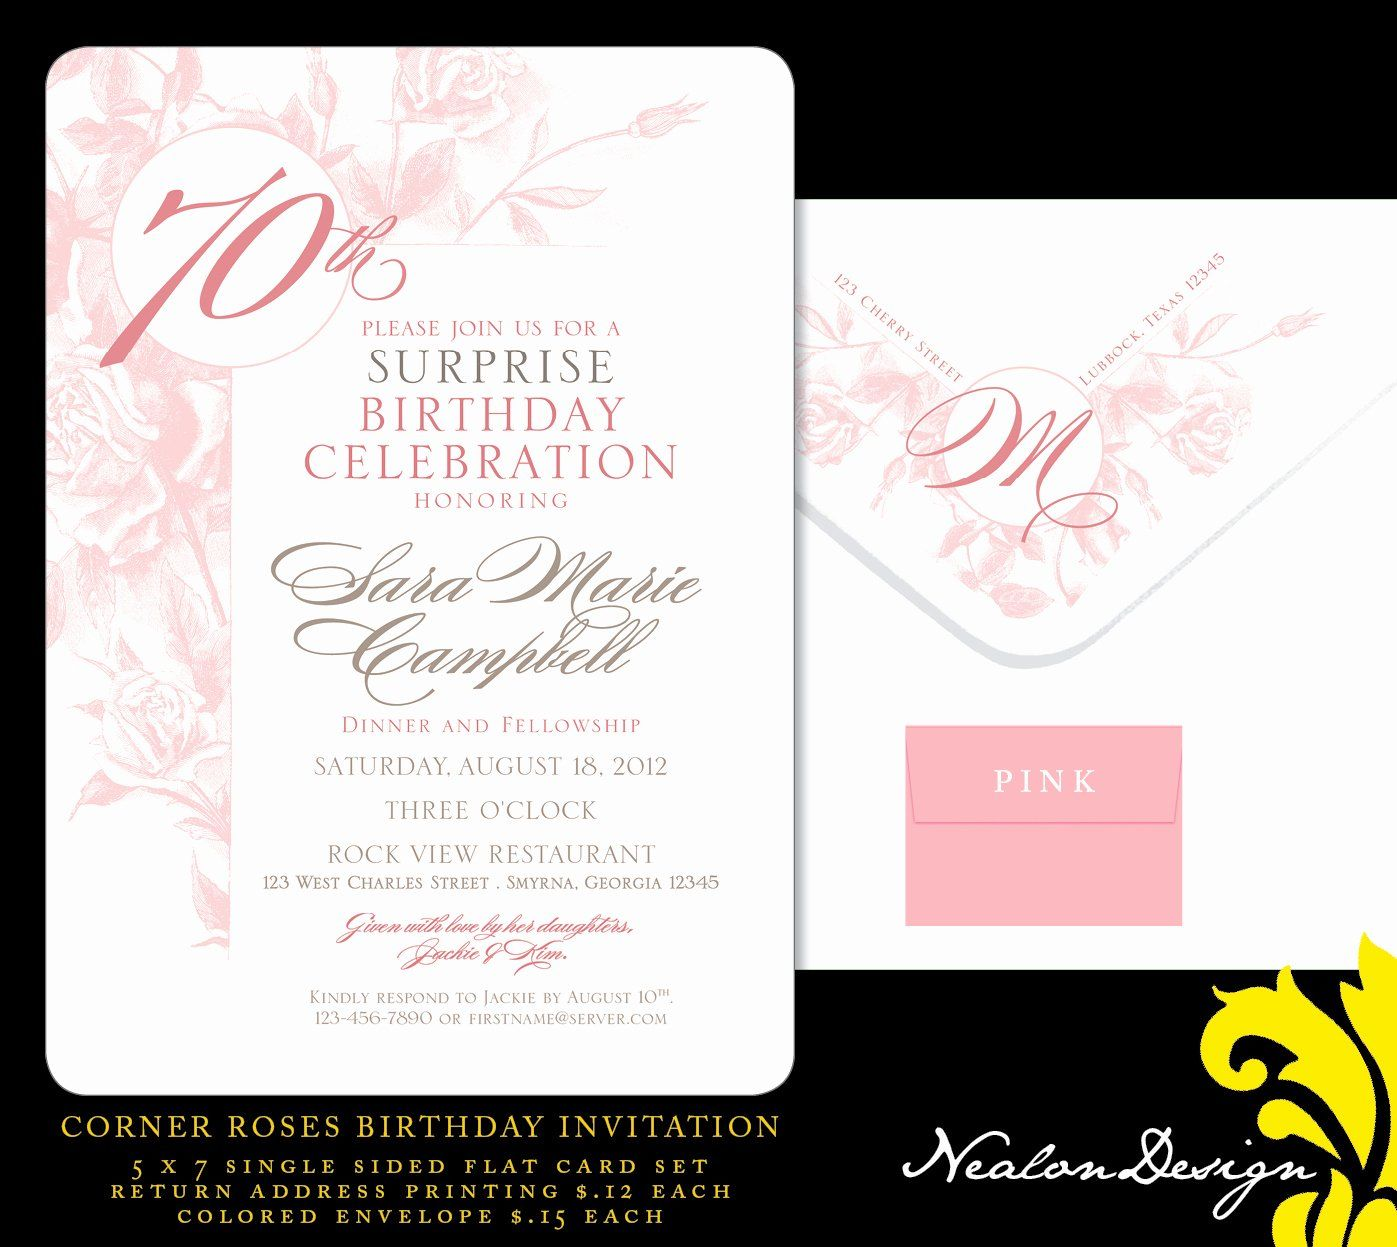 70th Birthday Party Invitation Wording Inspirational